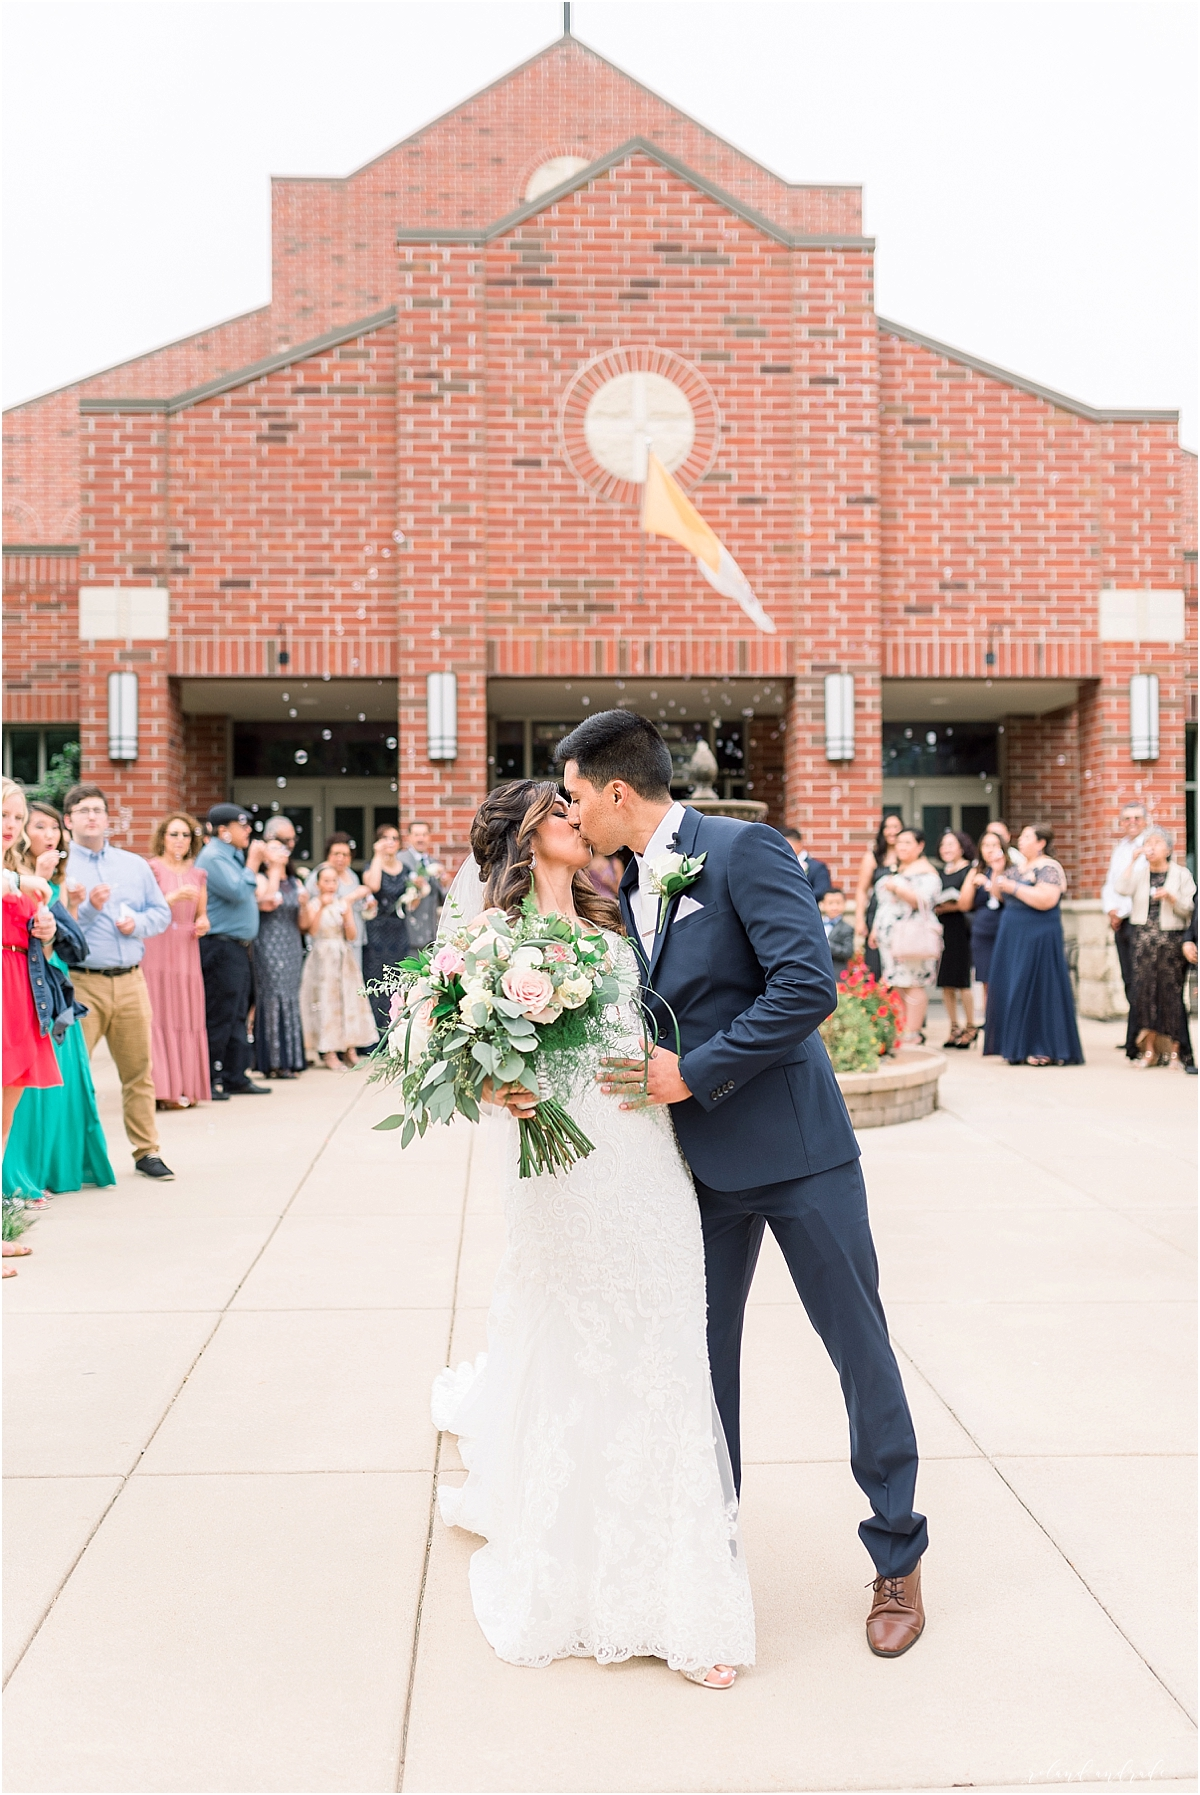 Tuscany Falls Wedding + Light and Airy Wedding Photographer Chicago, Mokena Wedding Photographer + Chicago Latino Photography + Naperville Wedding Photographer + Chicago Engagement Photographer + Best Photographer In Chicago_0042.jpg